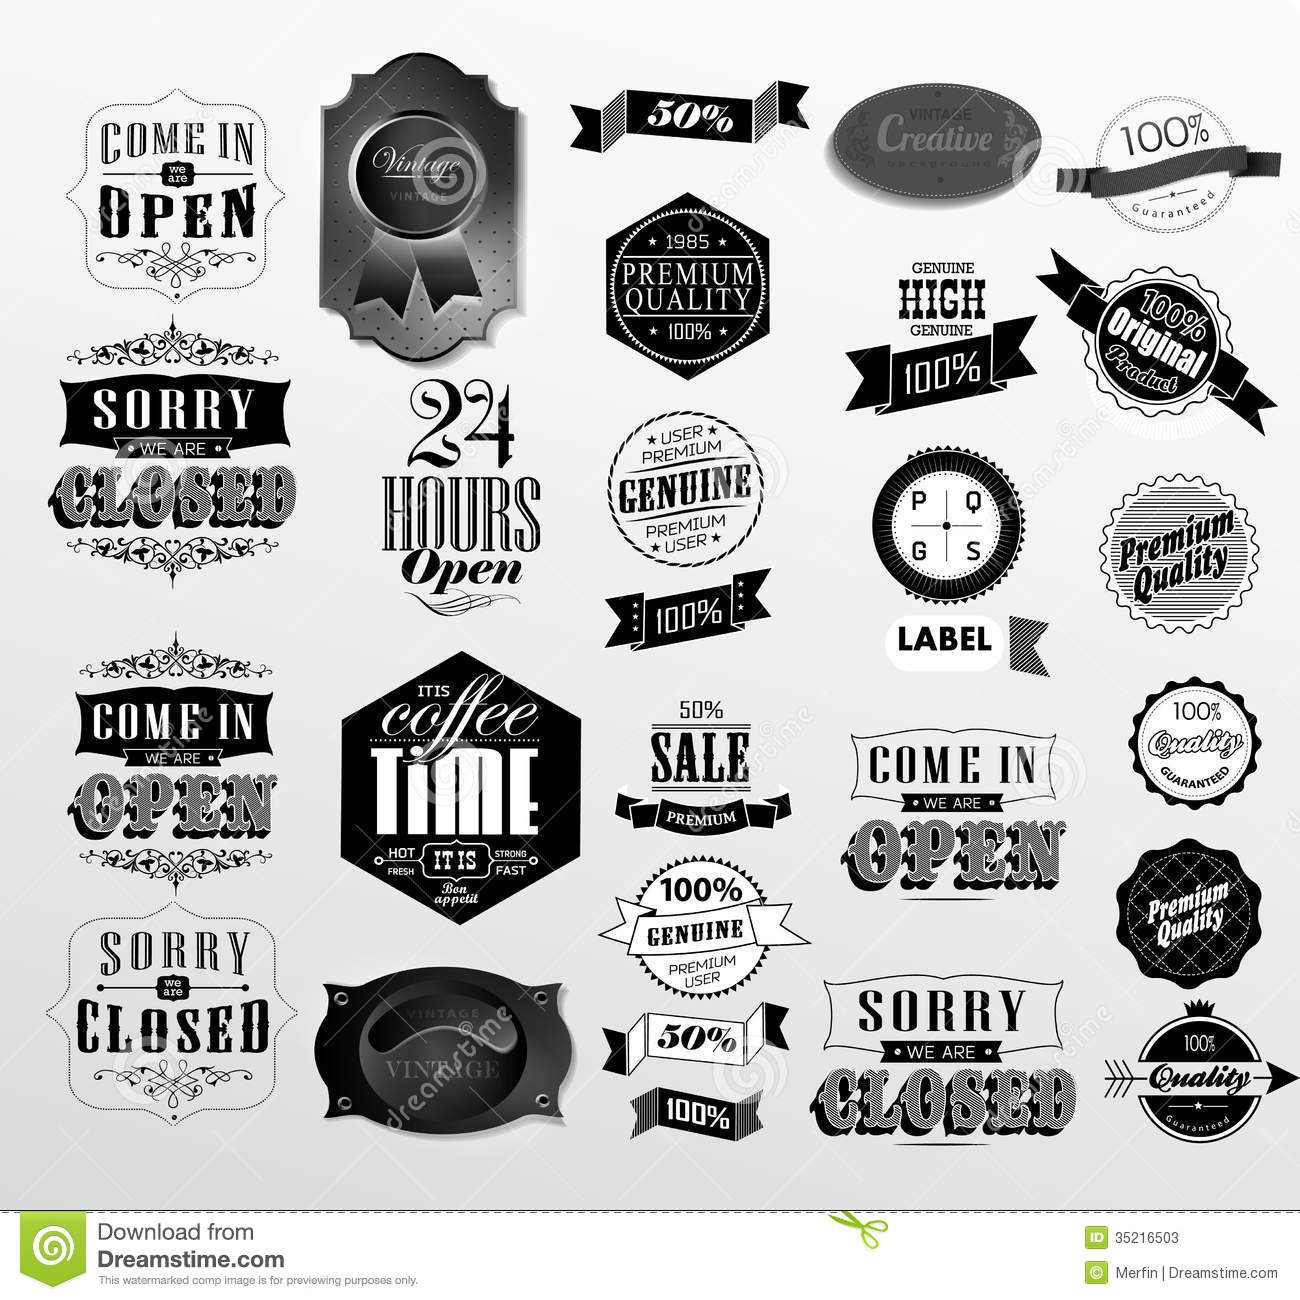 Premium Quality, Guarantee And Sale Labels Stock Vector - Image: 35216503